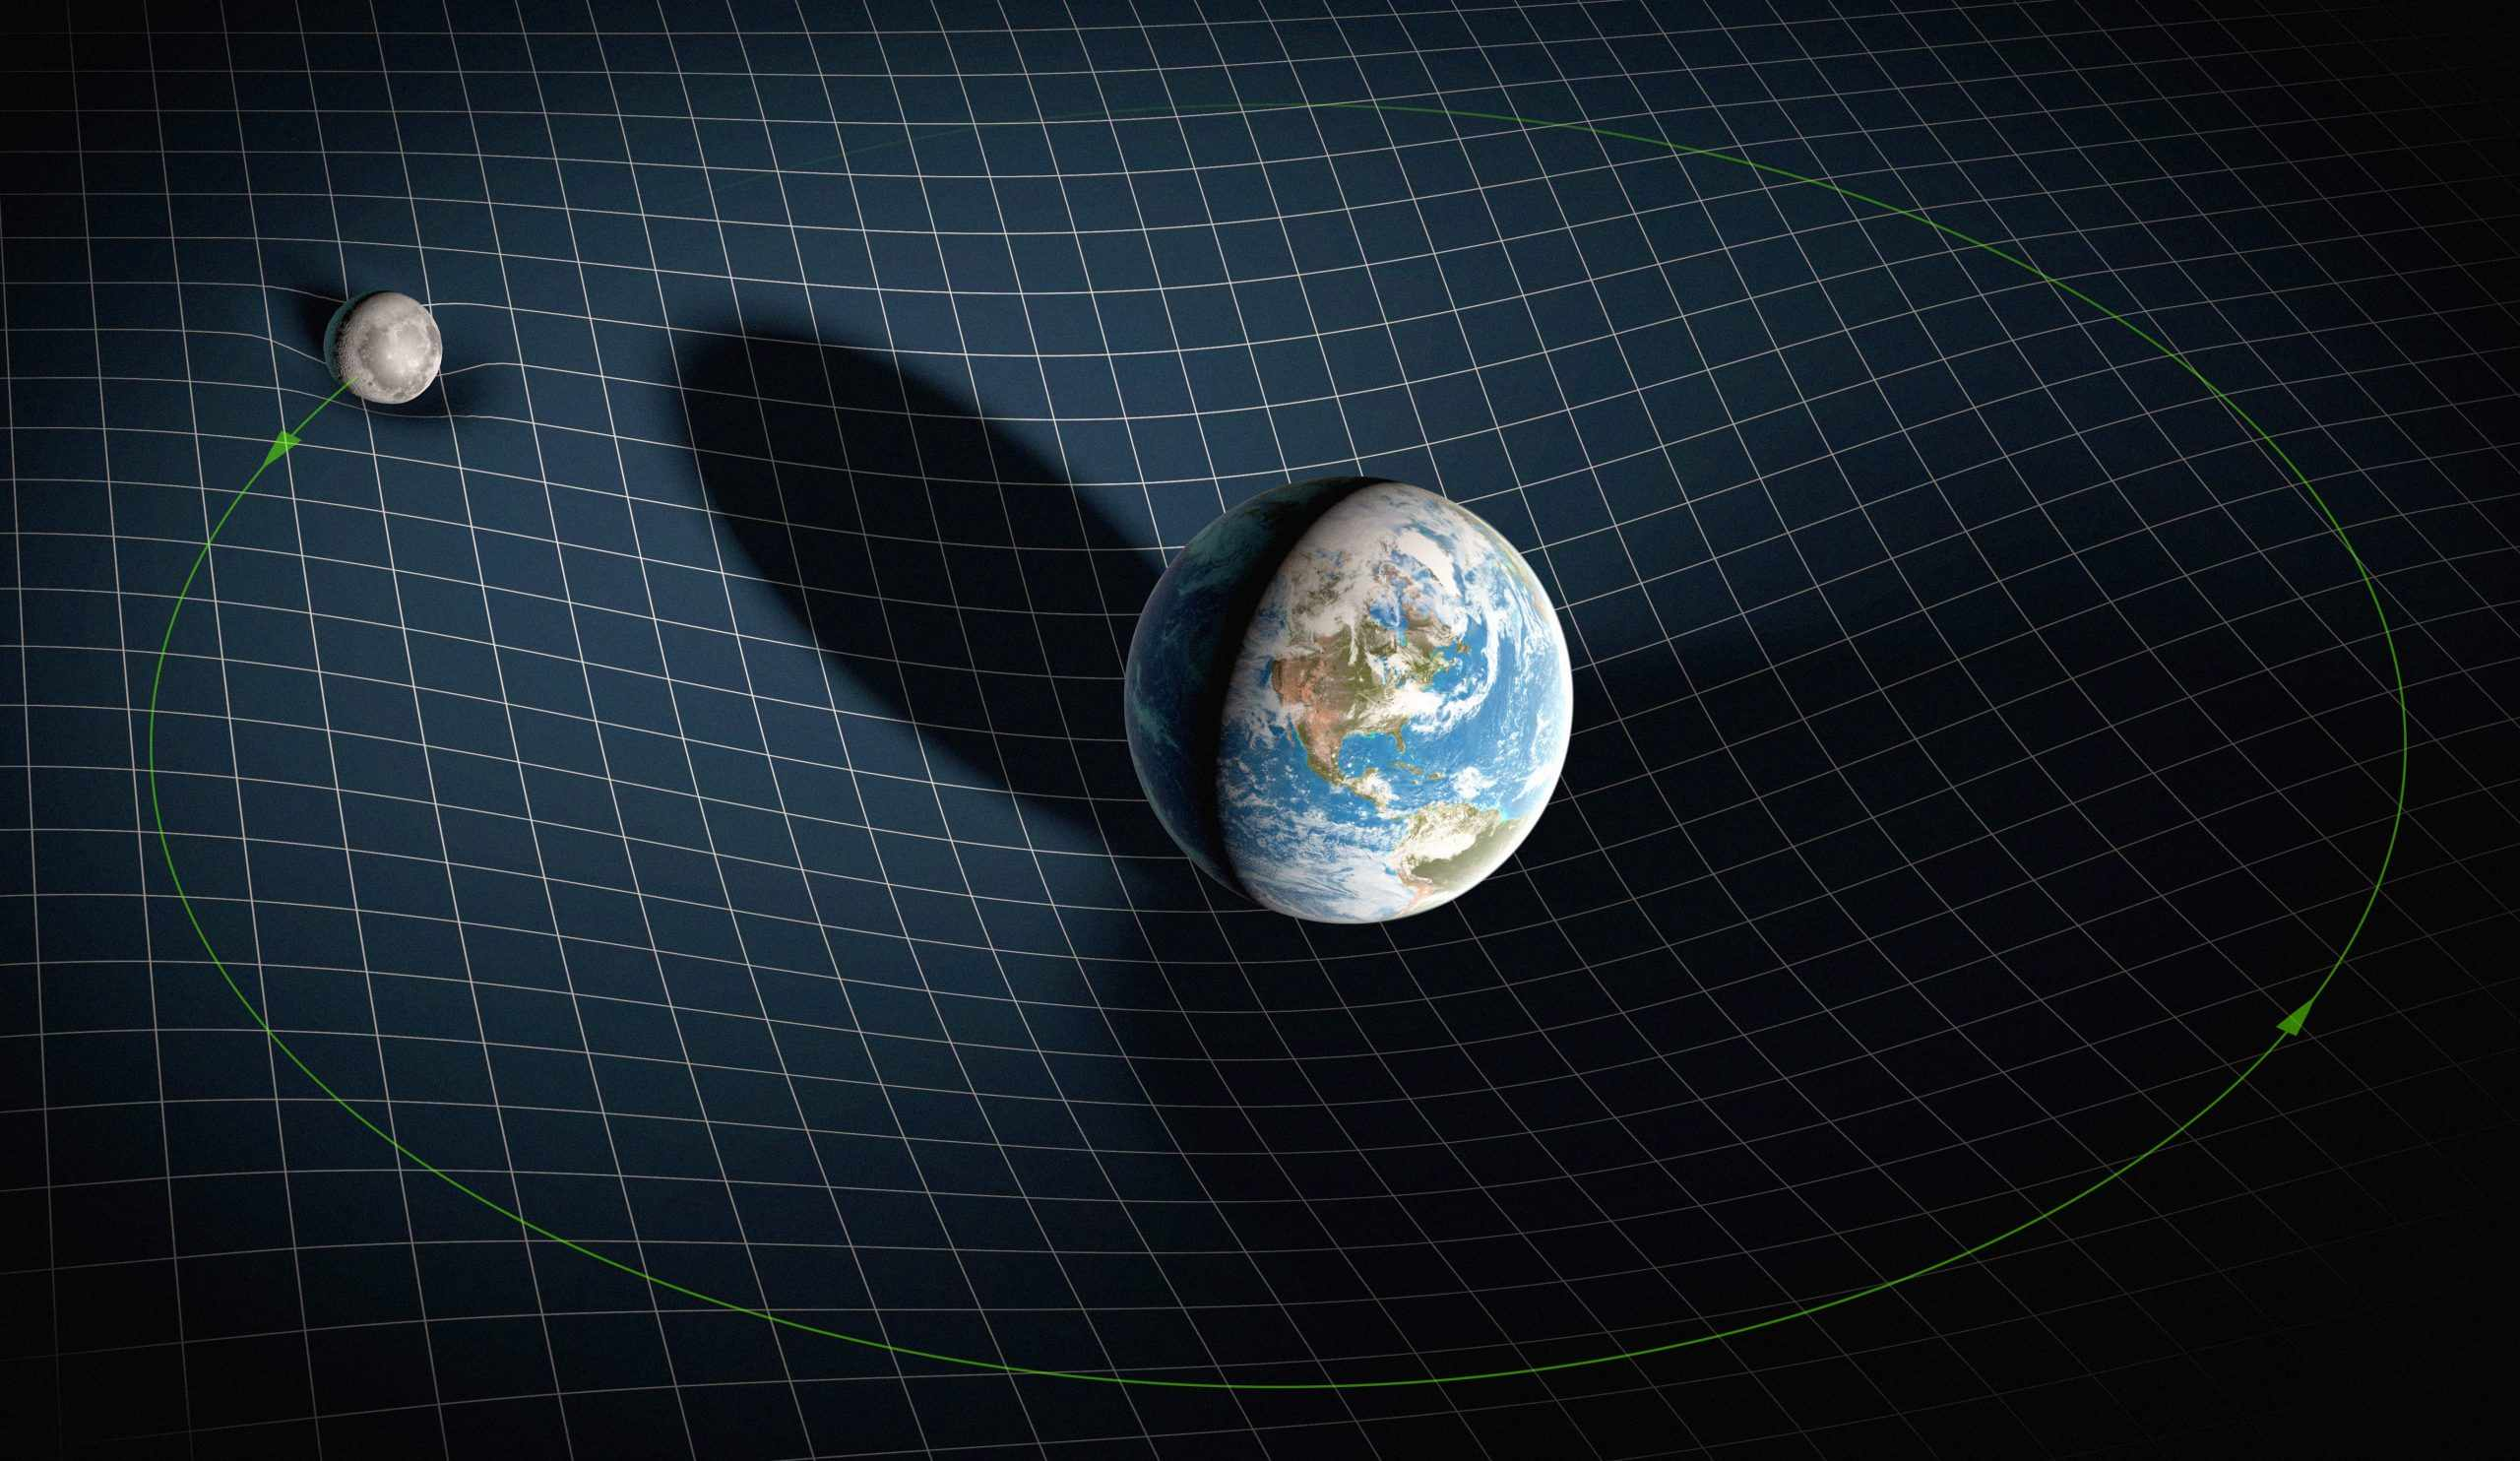 Illustration of Earth and Moon on a grid. Moon's orbit drawn in. Both Earth and Moon causing depression on grid below them.